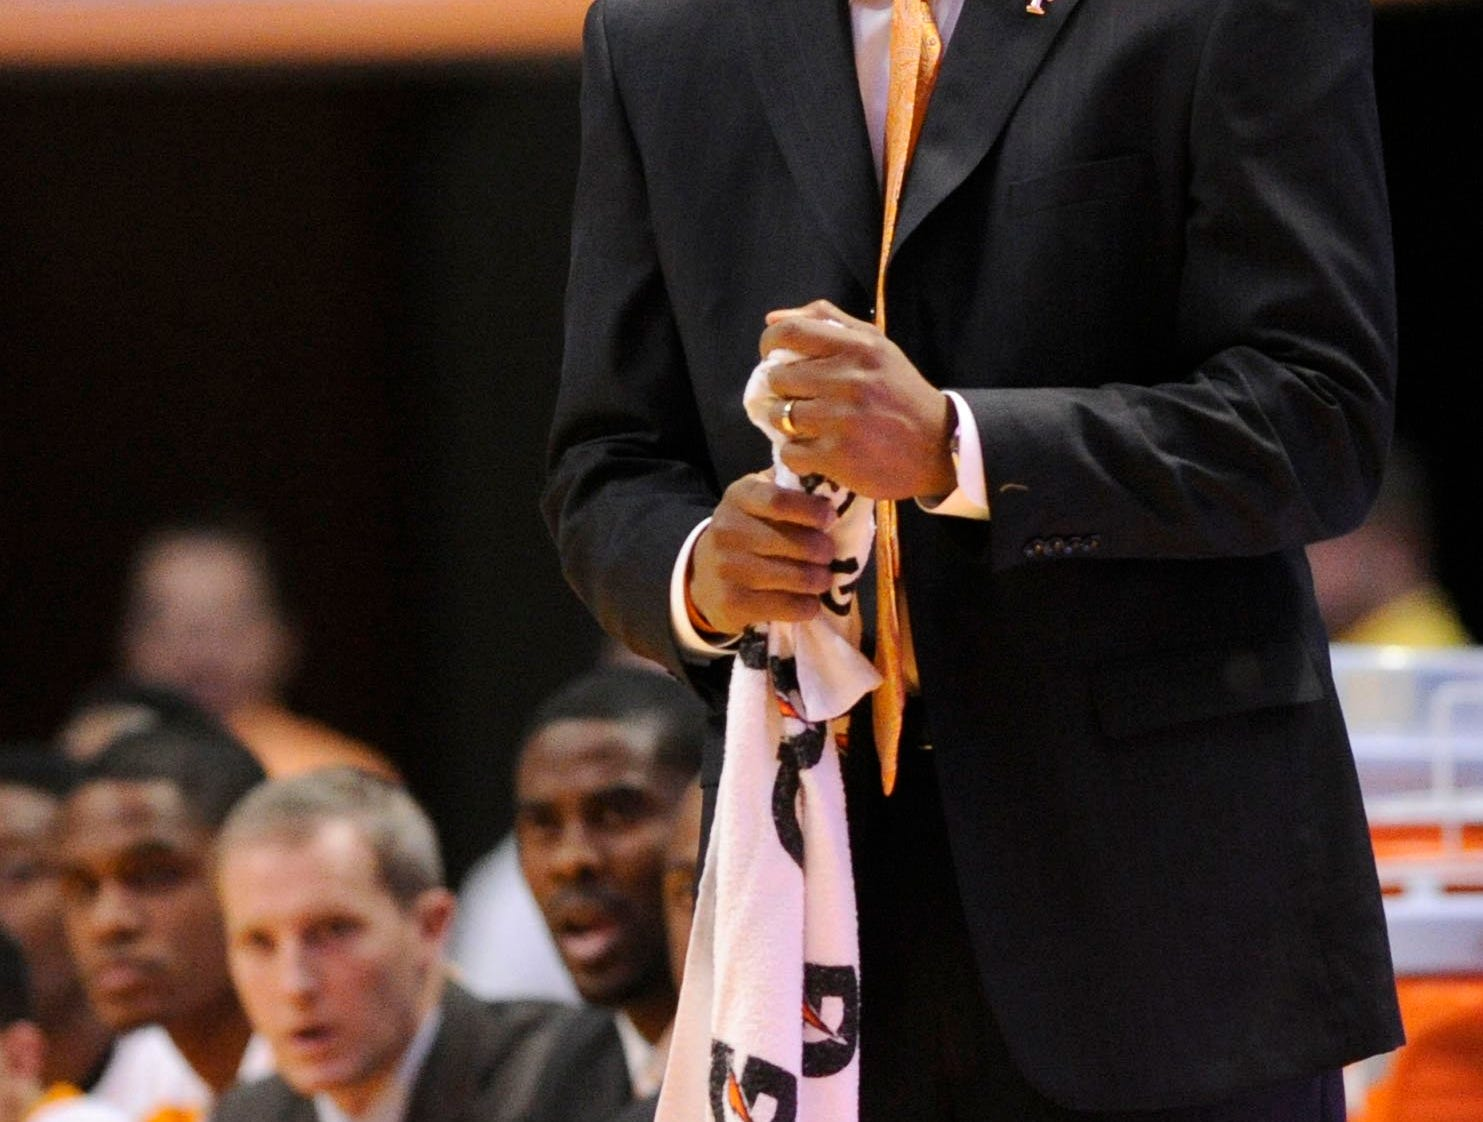 Tennessee head coach Cuonzo Martin watches the game with concern from the sideline during the first half at the Thompson-Boling Arena in Knoxville on Wednesday, Dec. 18, 2013. Tennessee lost to North Carolina State 65-68.